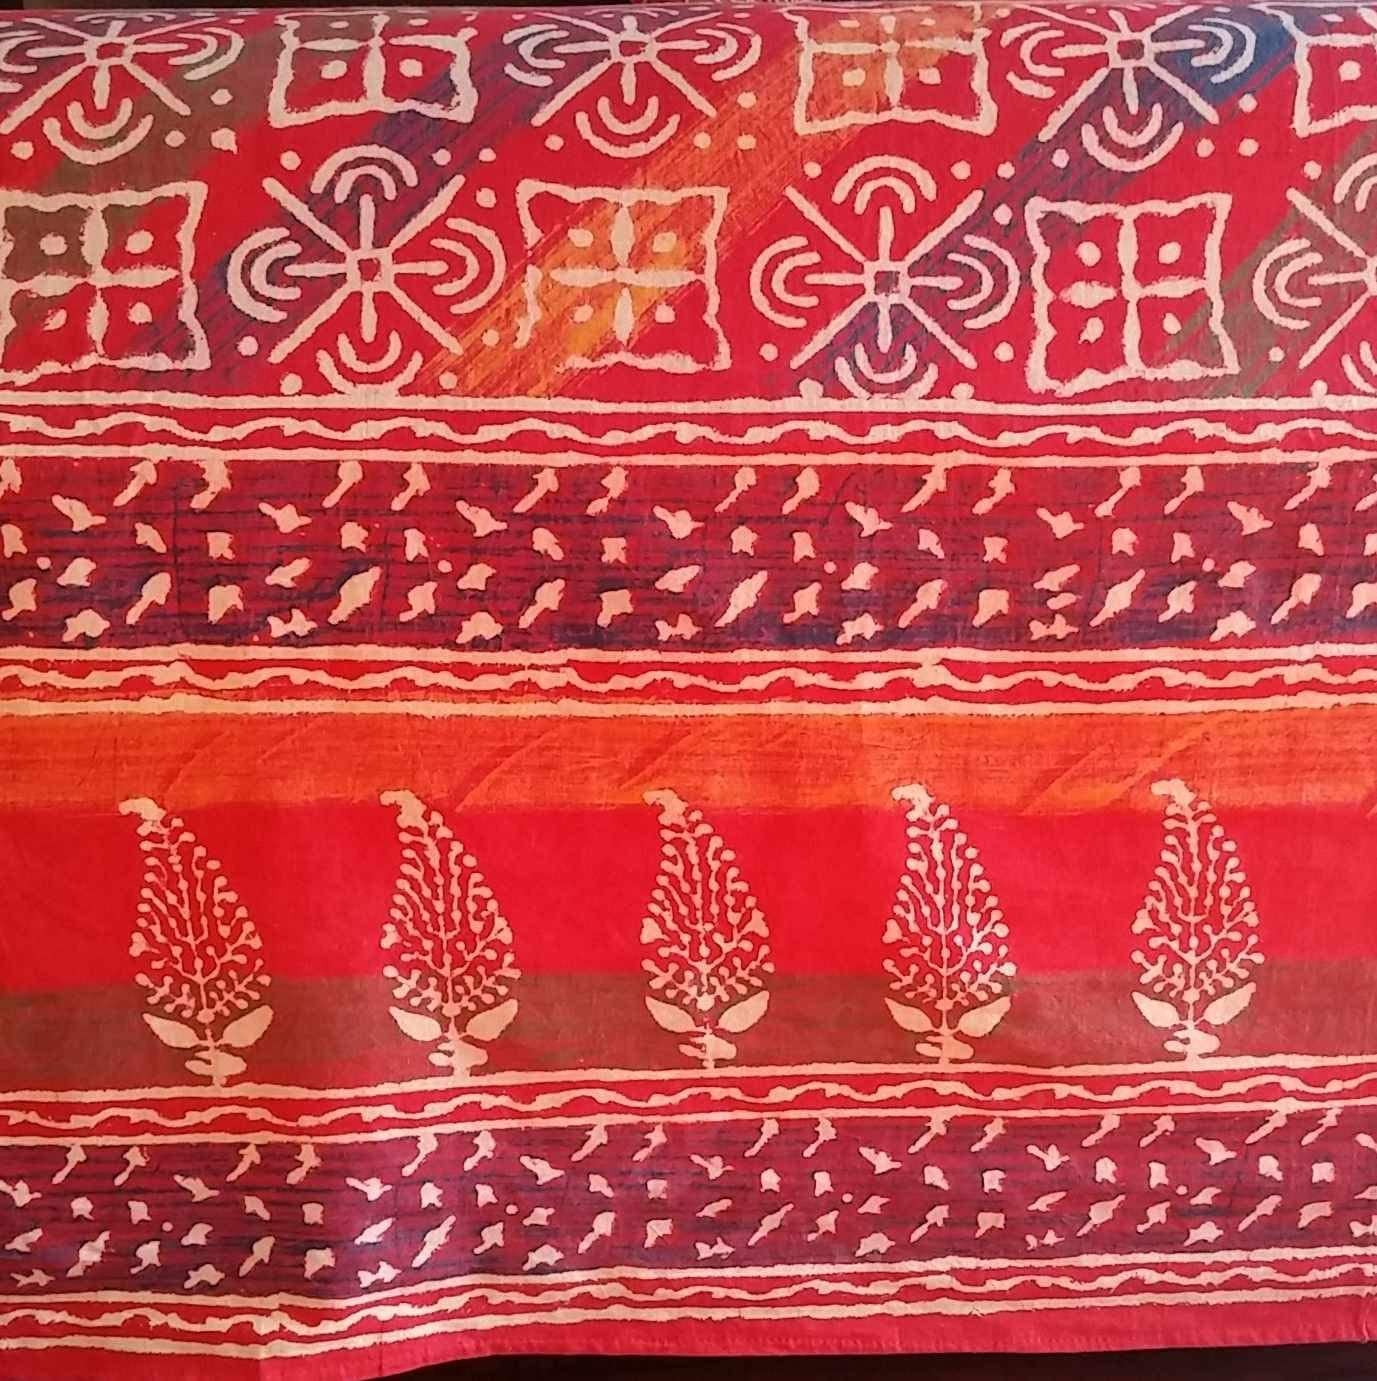 India Arts Handmade Cotton Hand Block Print Dabu Floral Tapestry Tablecloth Bedspread Throw Beach Sheet Sun Canopy Full